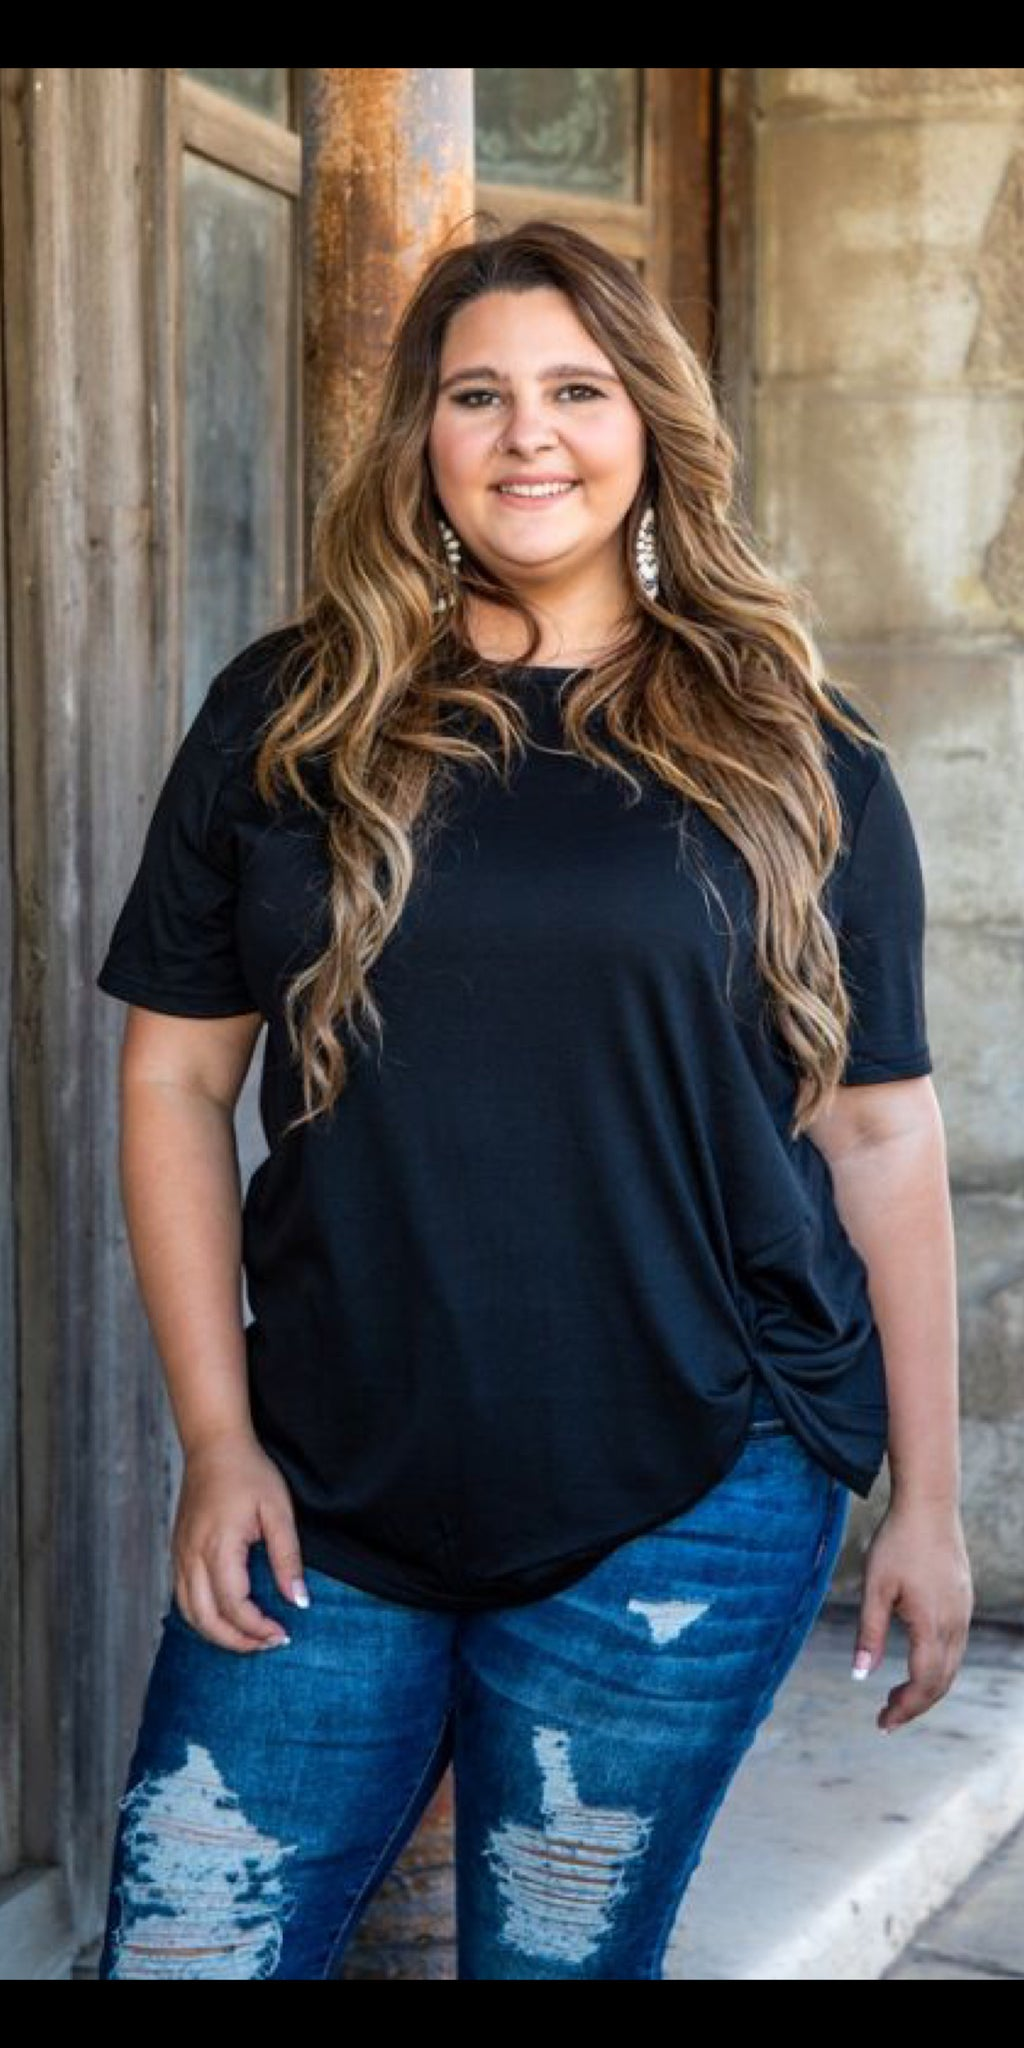 Take it Easy Black Knotty Top - Also in Plus Size